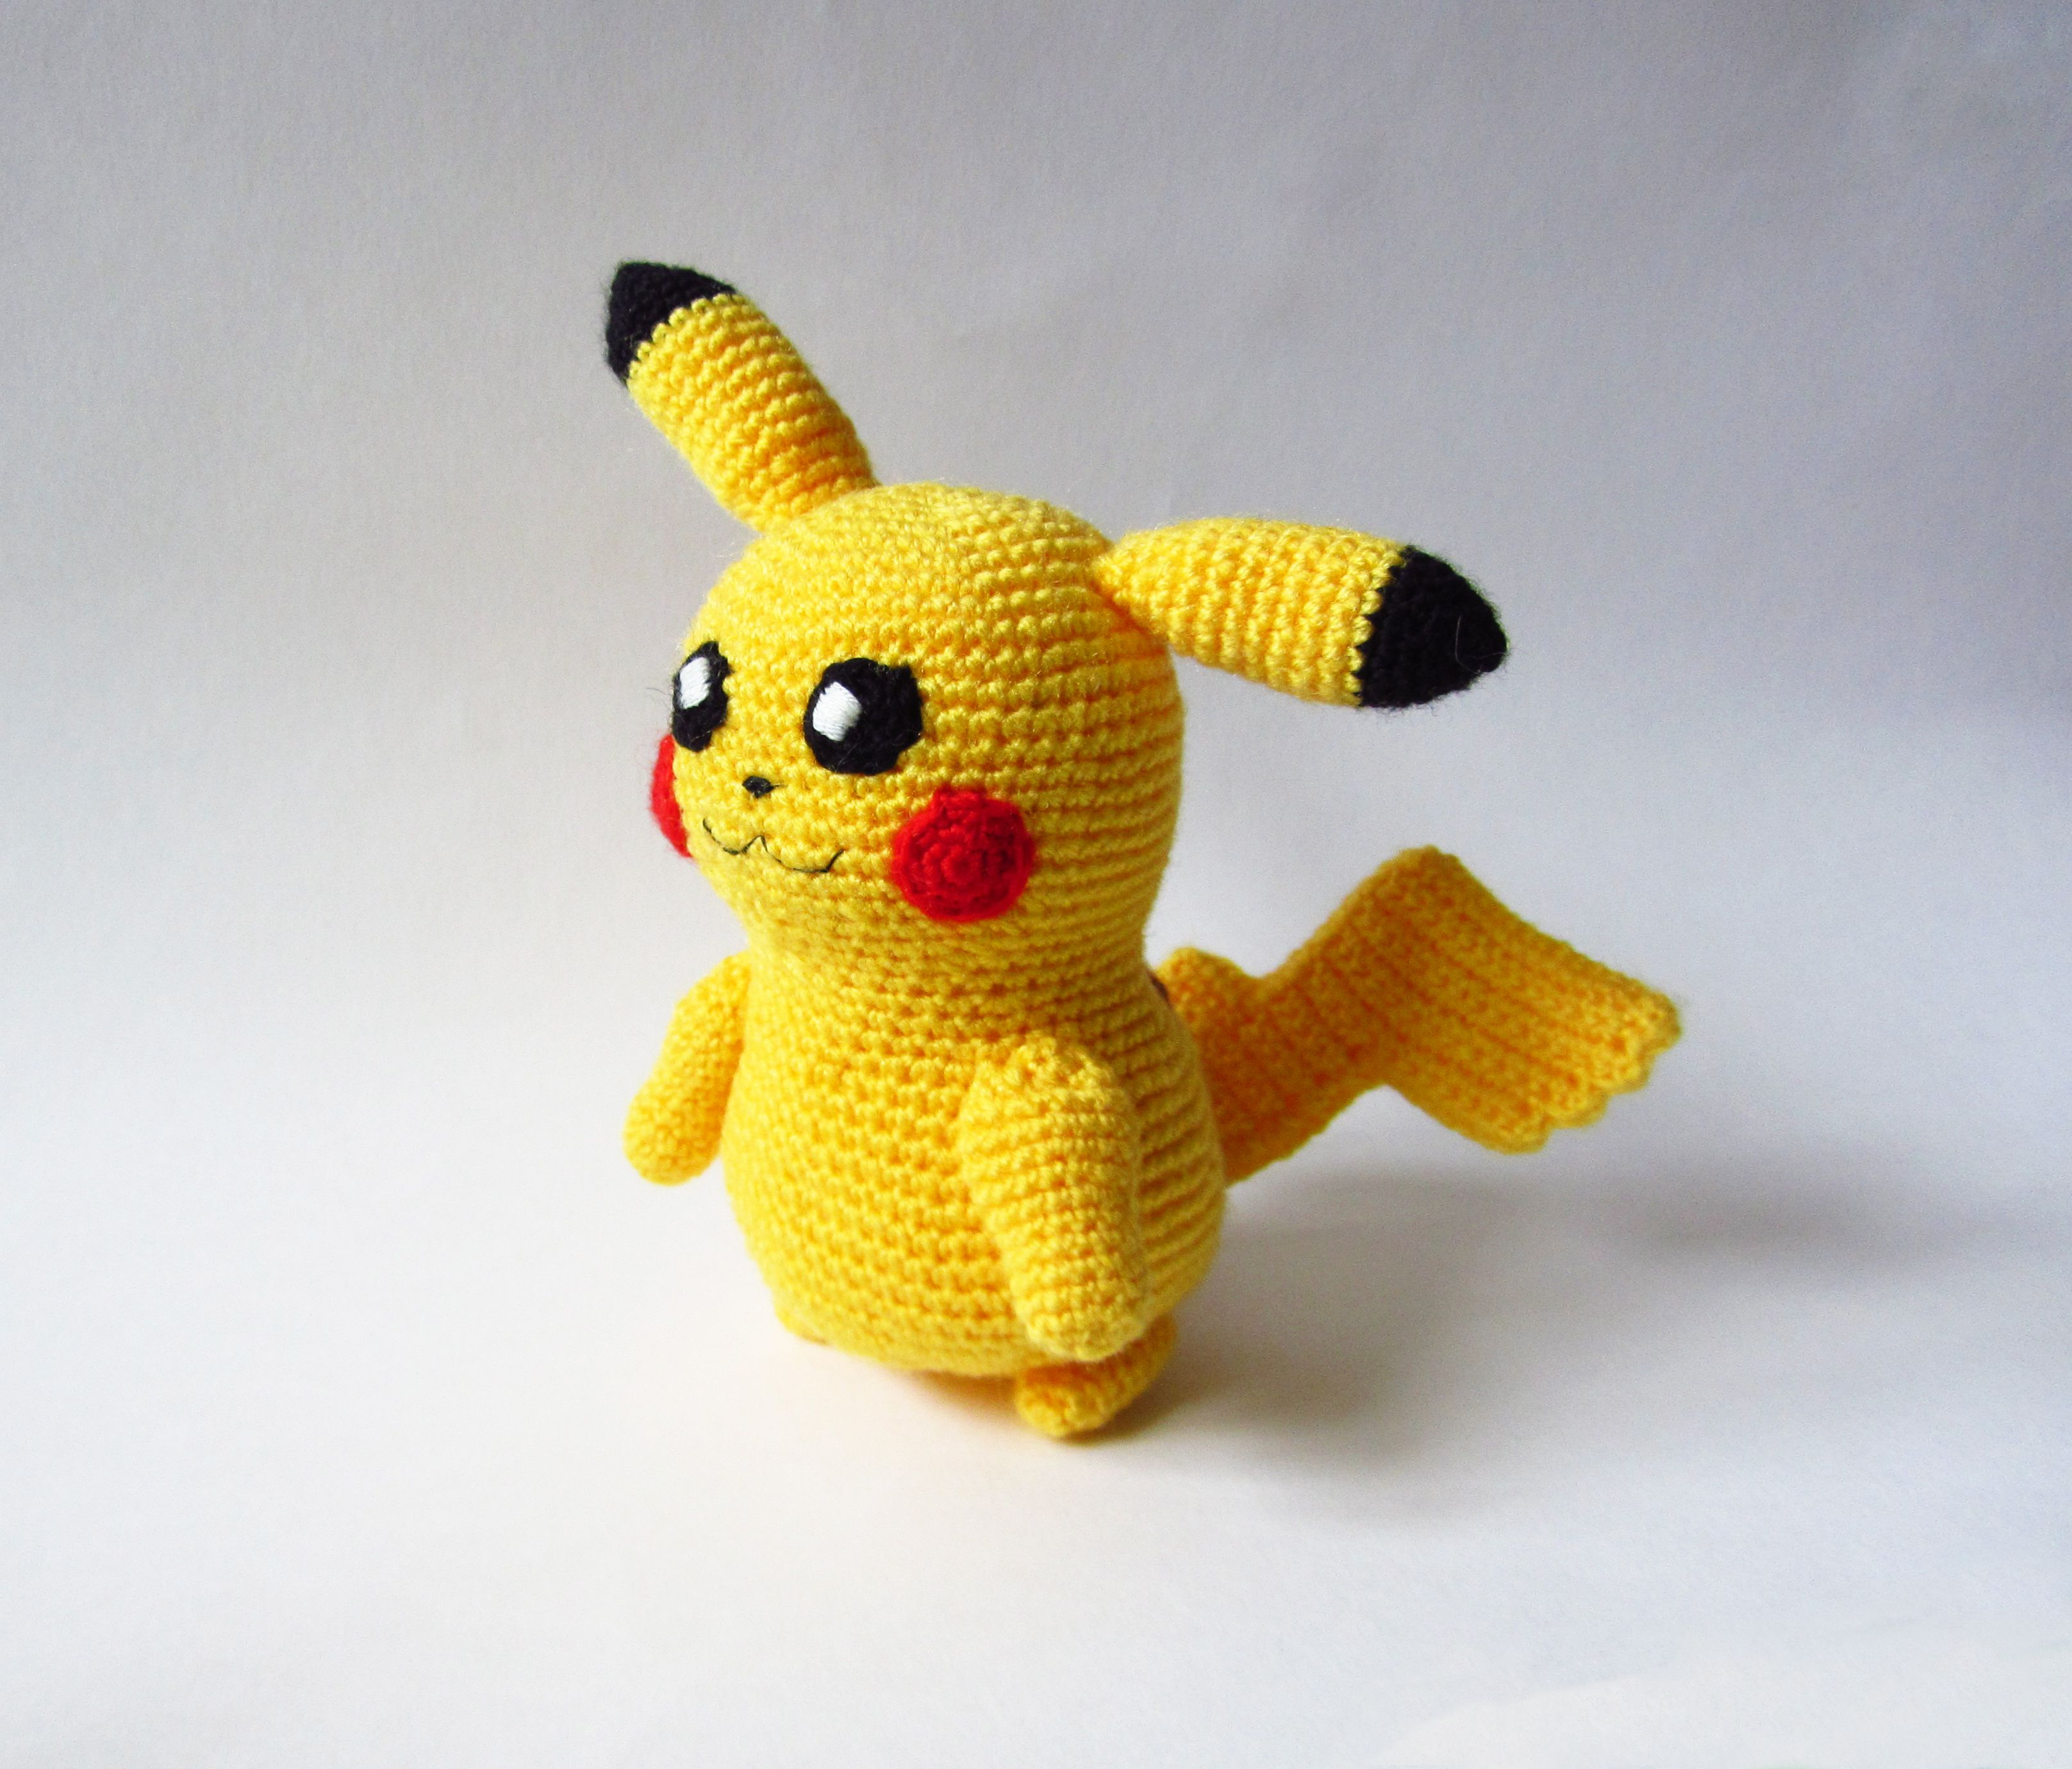 ручнаяработа пикачу игрушкавязаная pikachu pokemon покемон handmade аниме